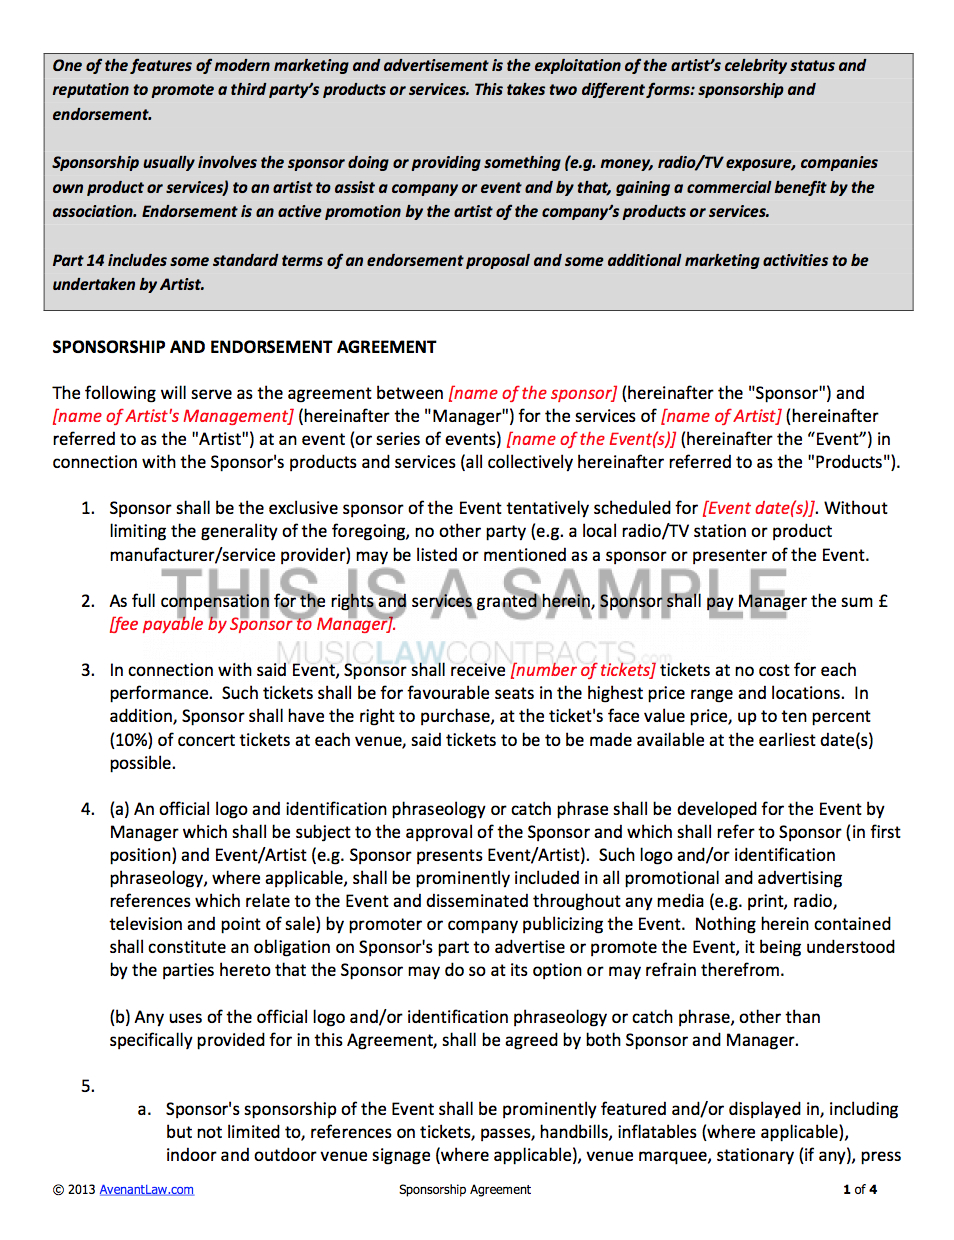 Sponsorship Contract Template For Artists With Tv Show Sponsorship Agreement Template